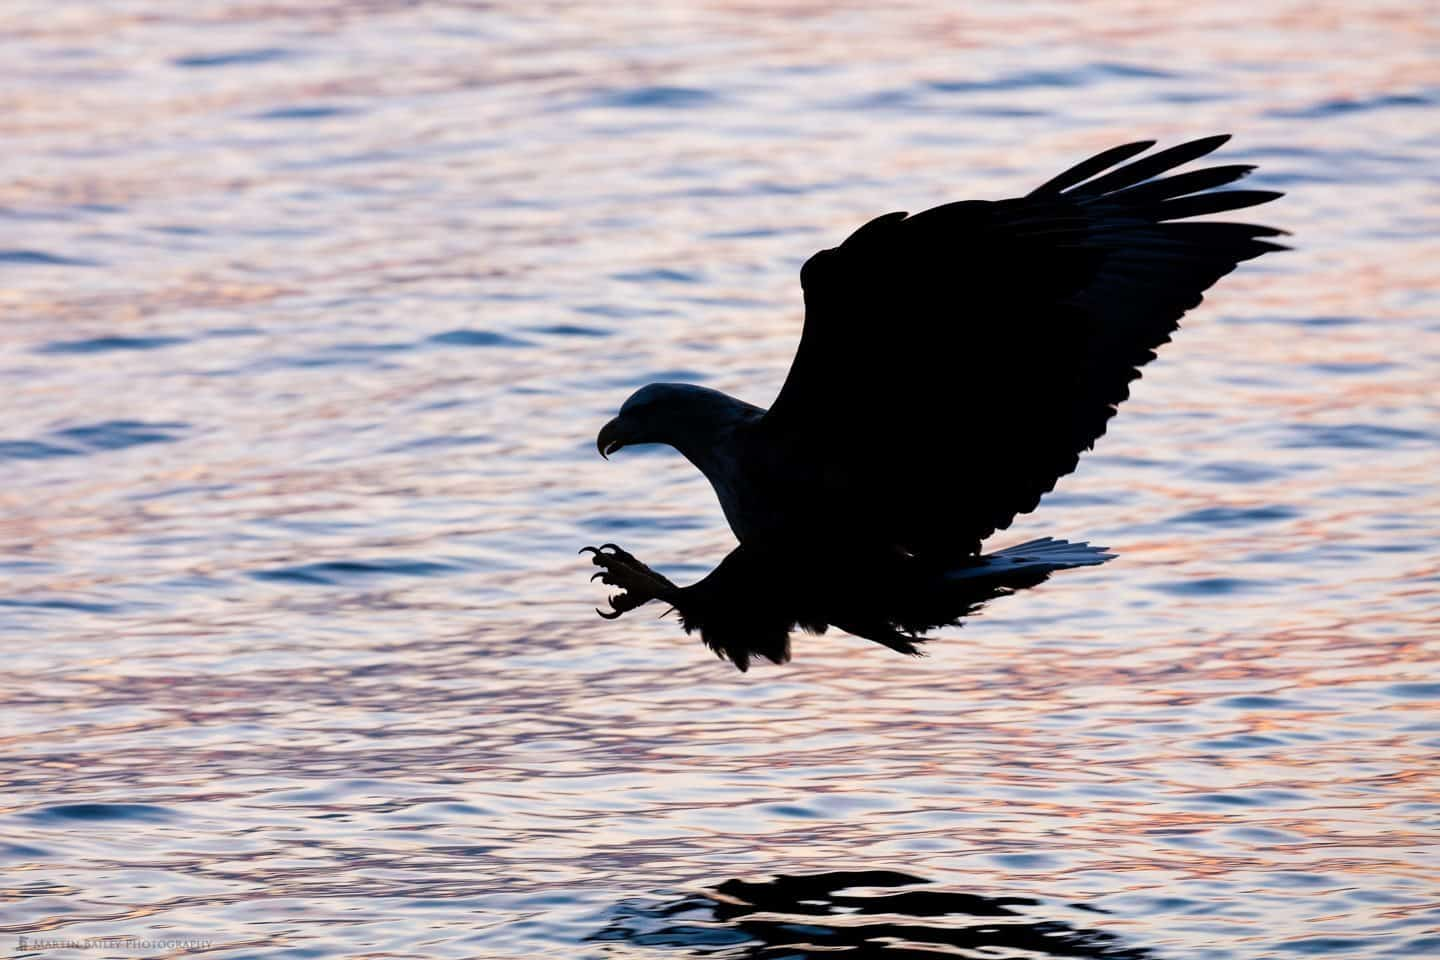 White-Tailed Eagle Swoops in Silhouette